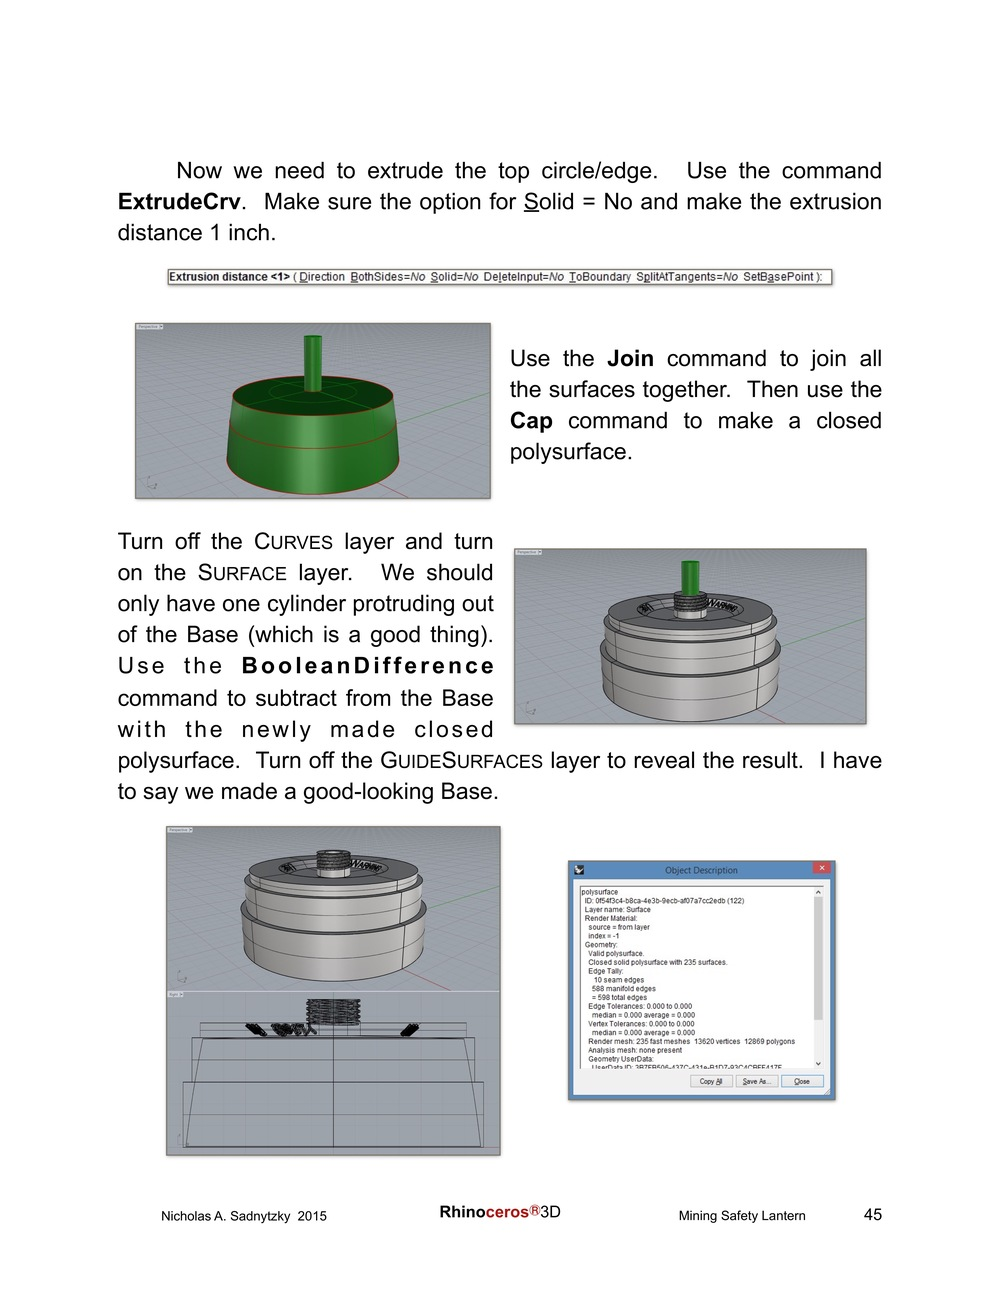 An 1815 Mining Safety Lantern Tutorial _Preview_NAOMS  45.jpeg